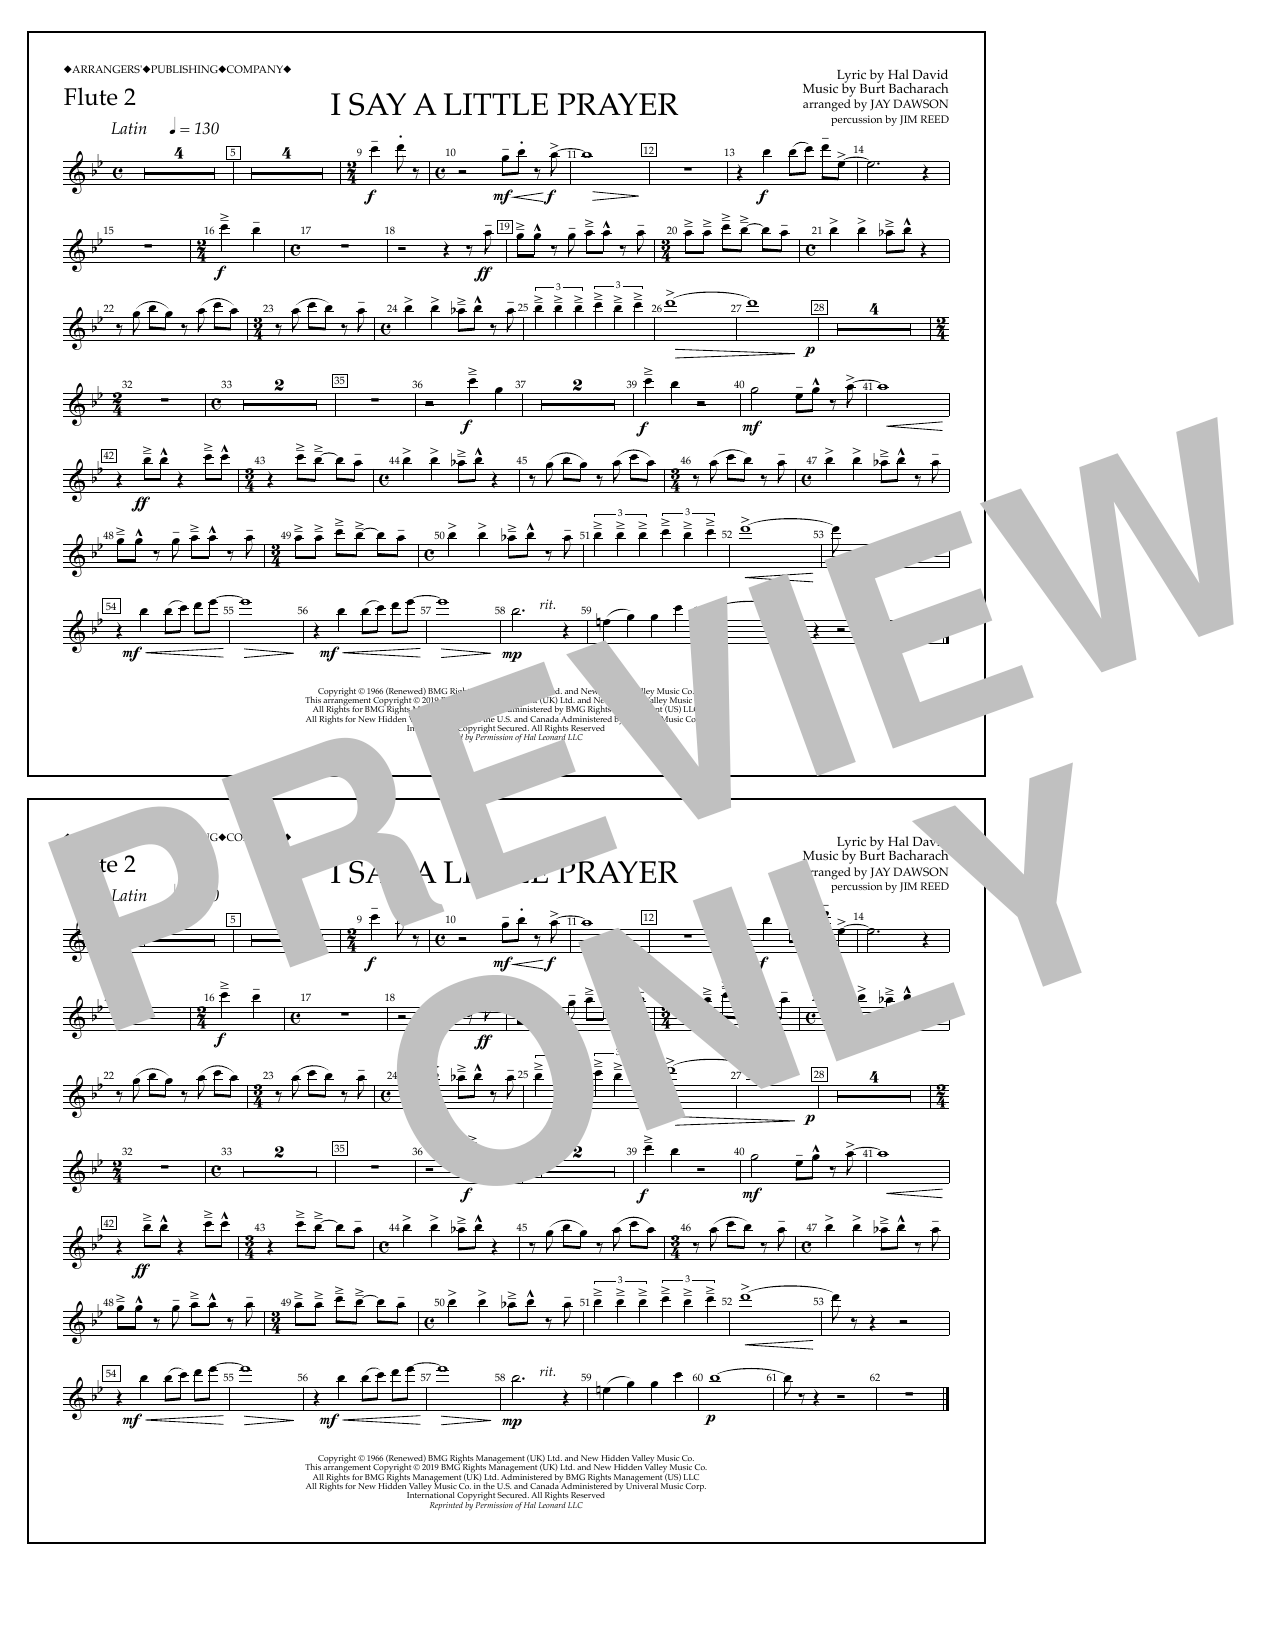 Aretha Franklin I Say a Little Prayer (arr. Jay Dawson) - Flute 2 sheet music notes and chords. Download Printable PDF.